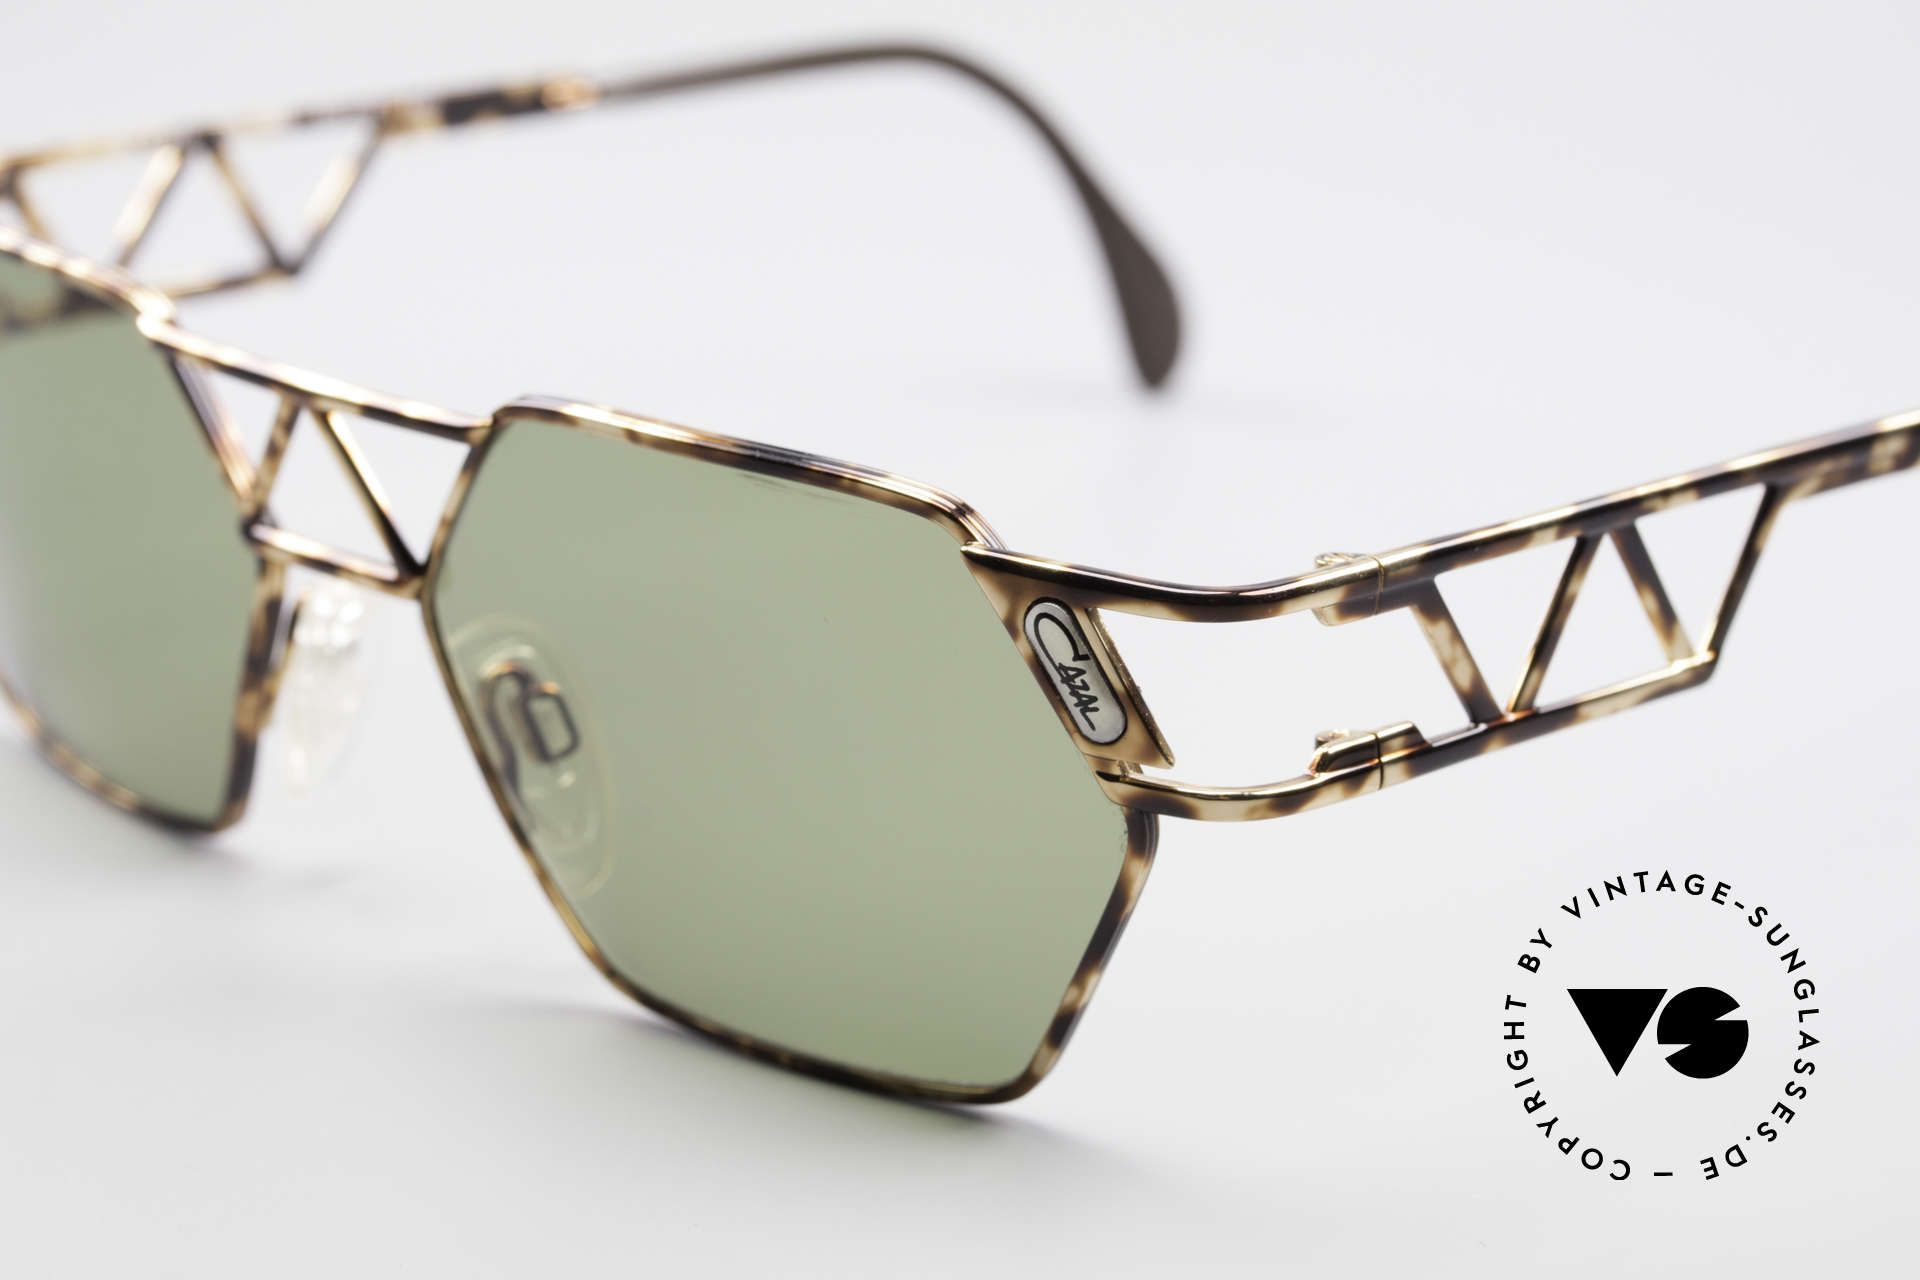 Cazal 960 Vintage Designer Sunglasses, new old stock (like all our rare vintage CAZAL eyewear), Made for Men and Women